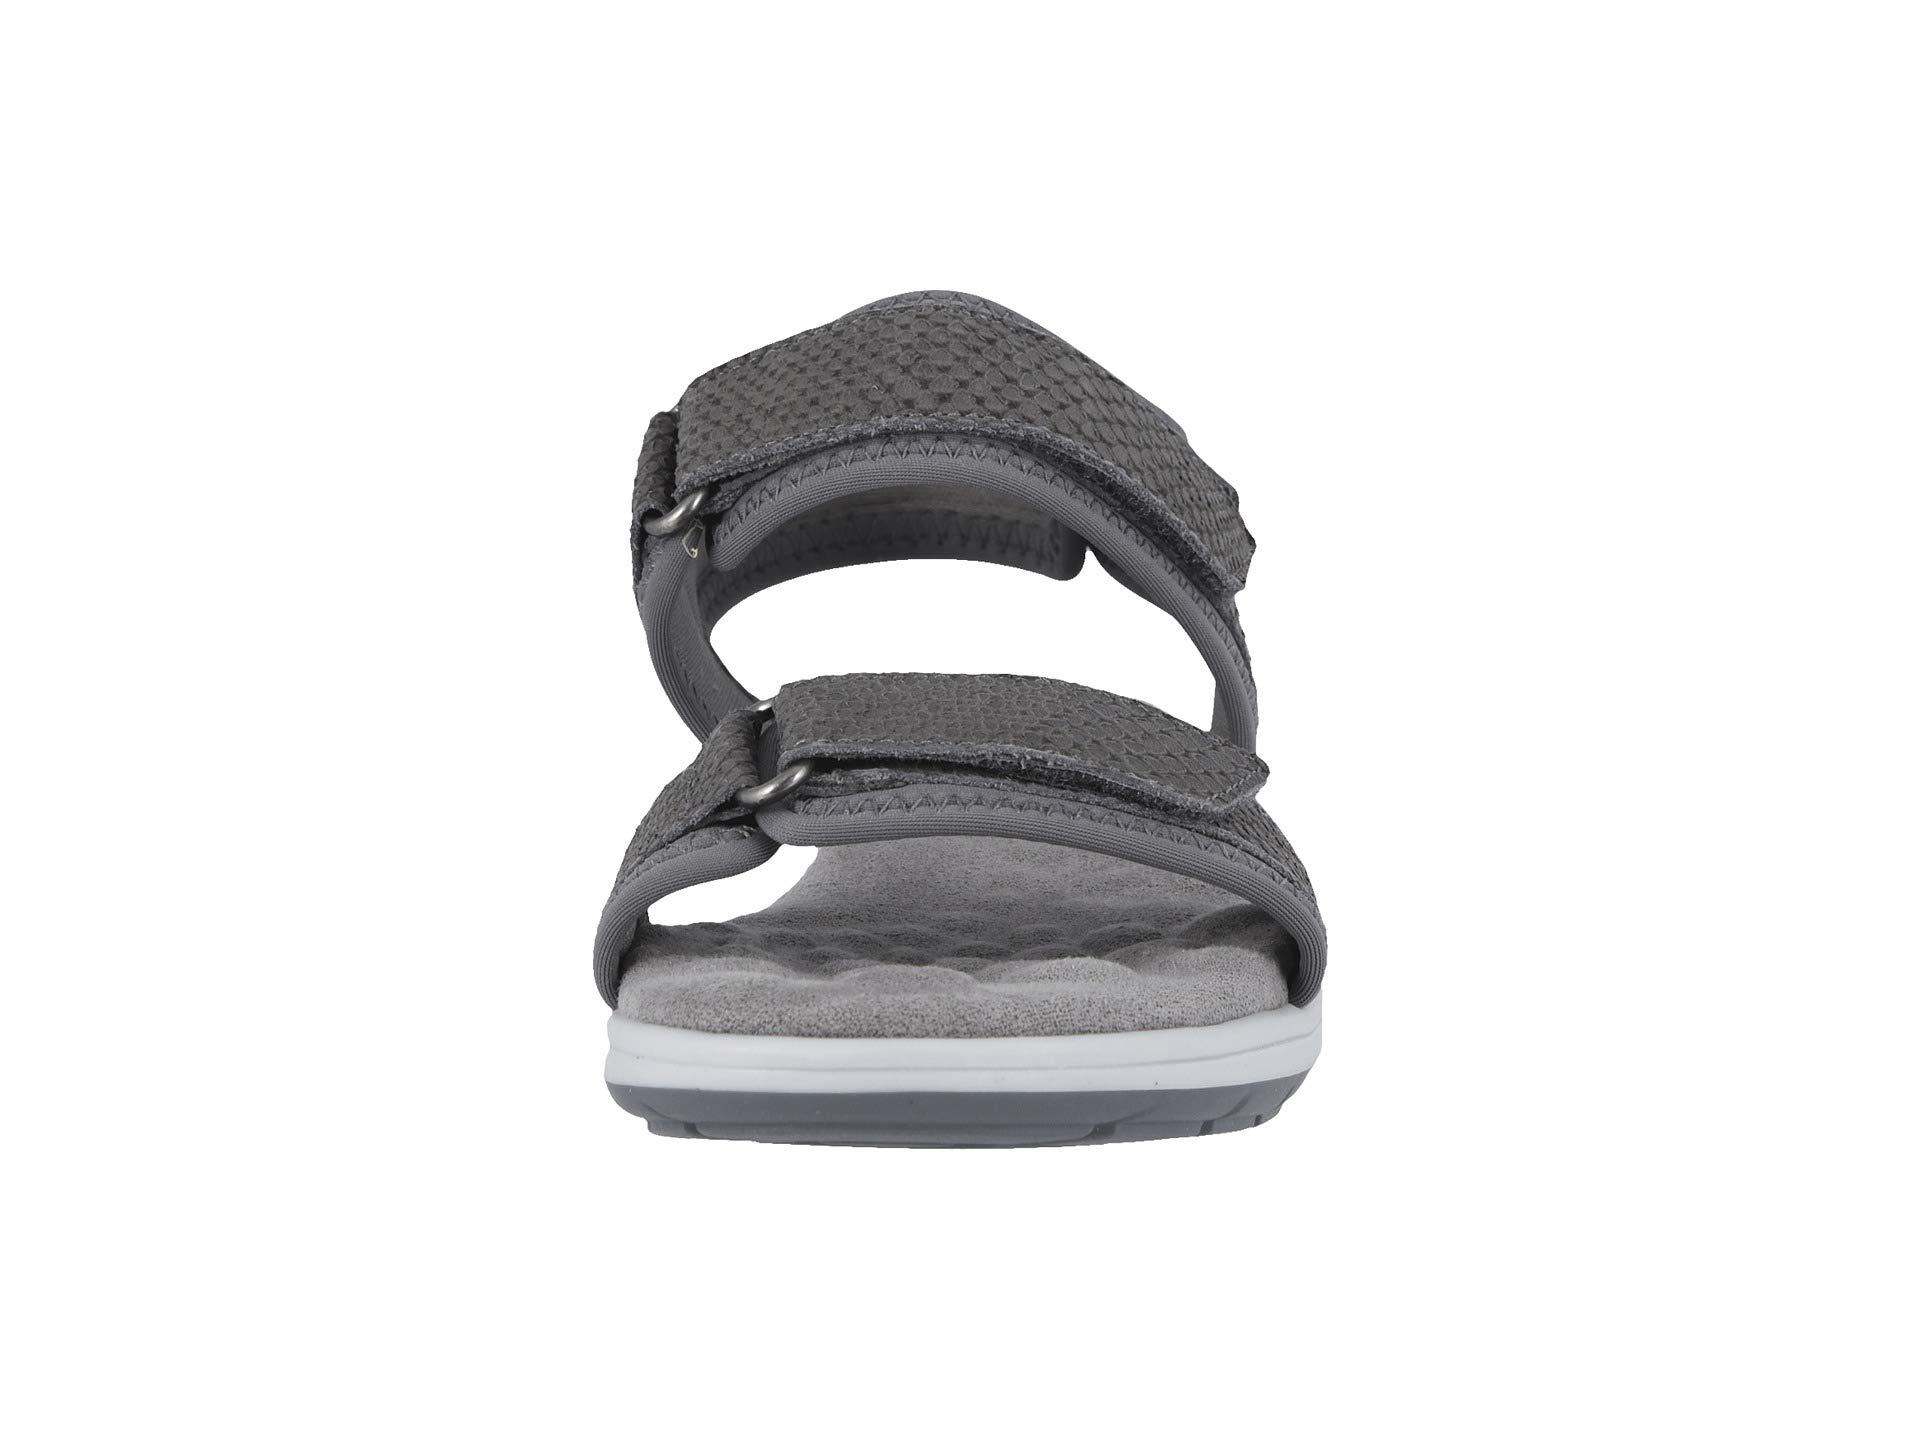 591e1e3ead8f Walking Cradles - Shea (slate Gray Lycra matte Snake Print) Women s Sandals  -. View fullscreen